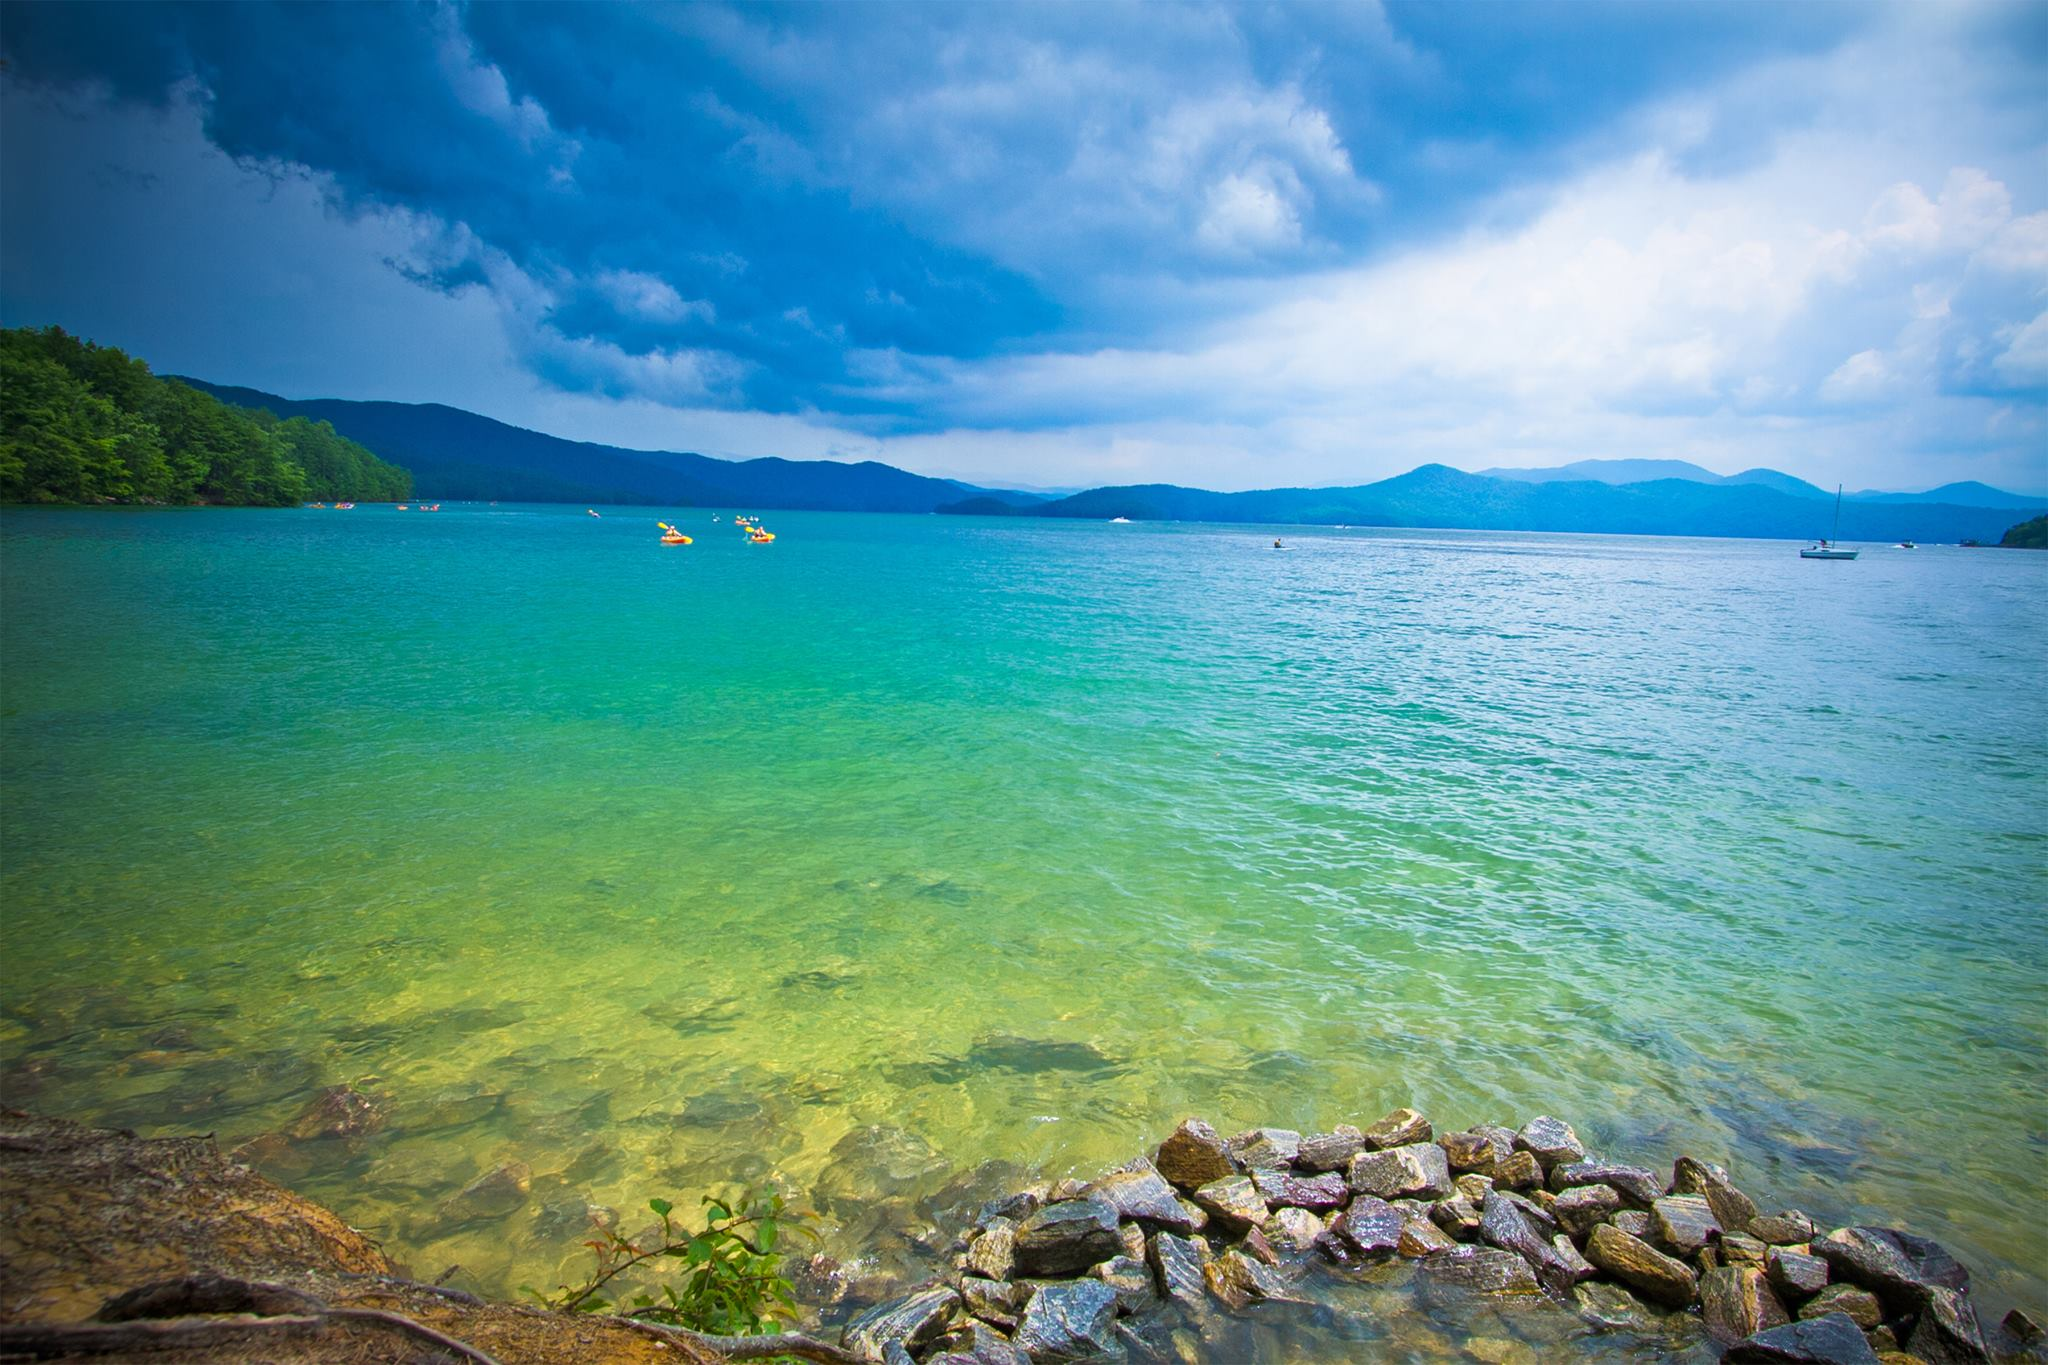 Youll Love The Crystalline Waters Found At Lake Jocassee In South